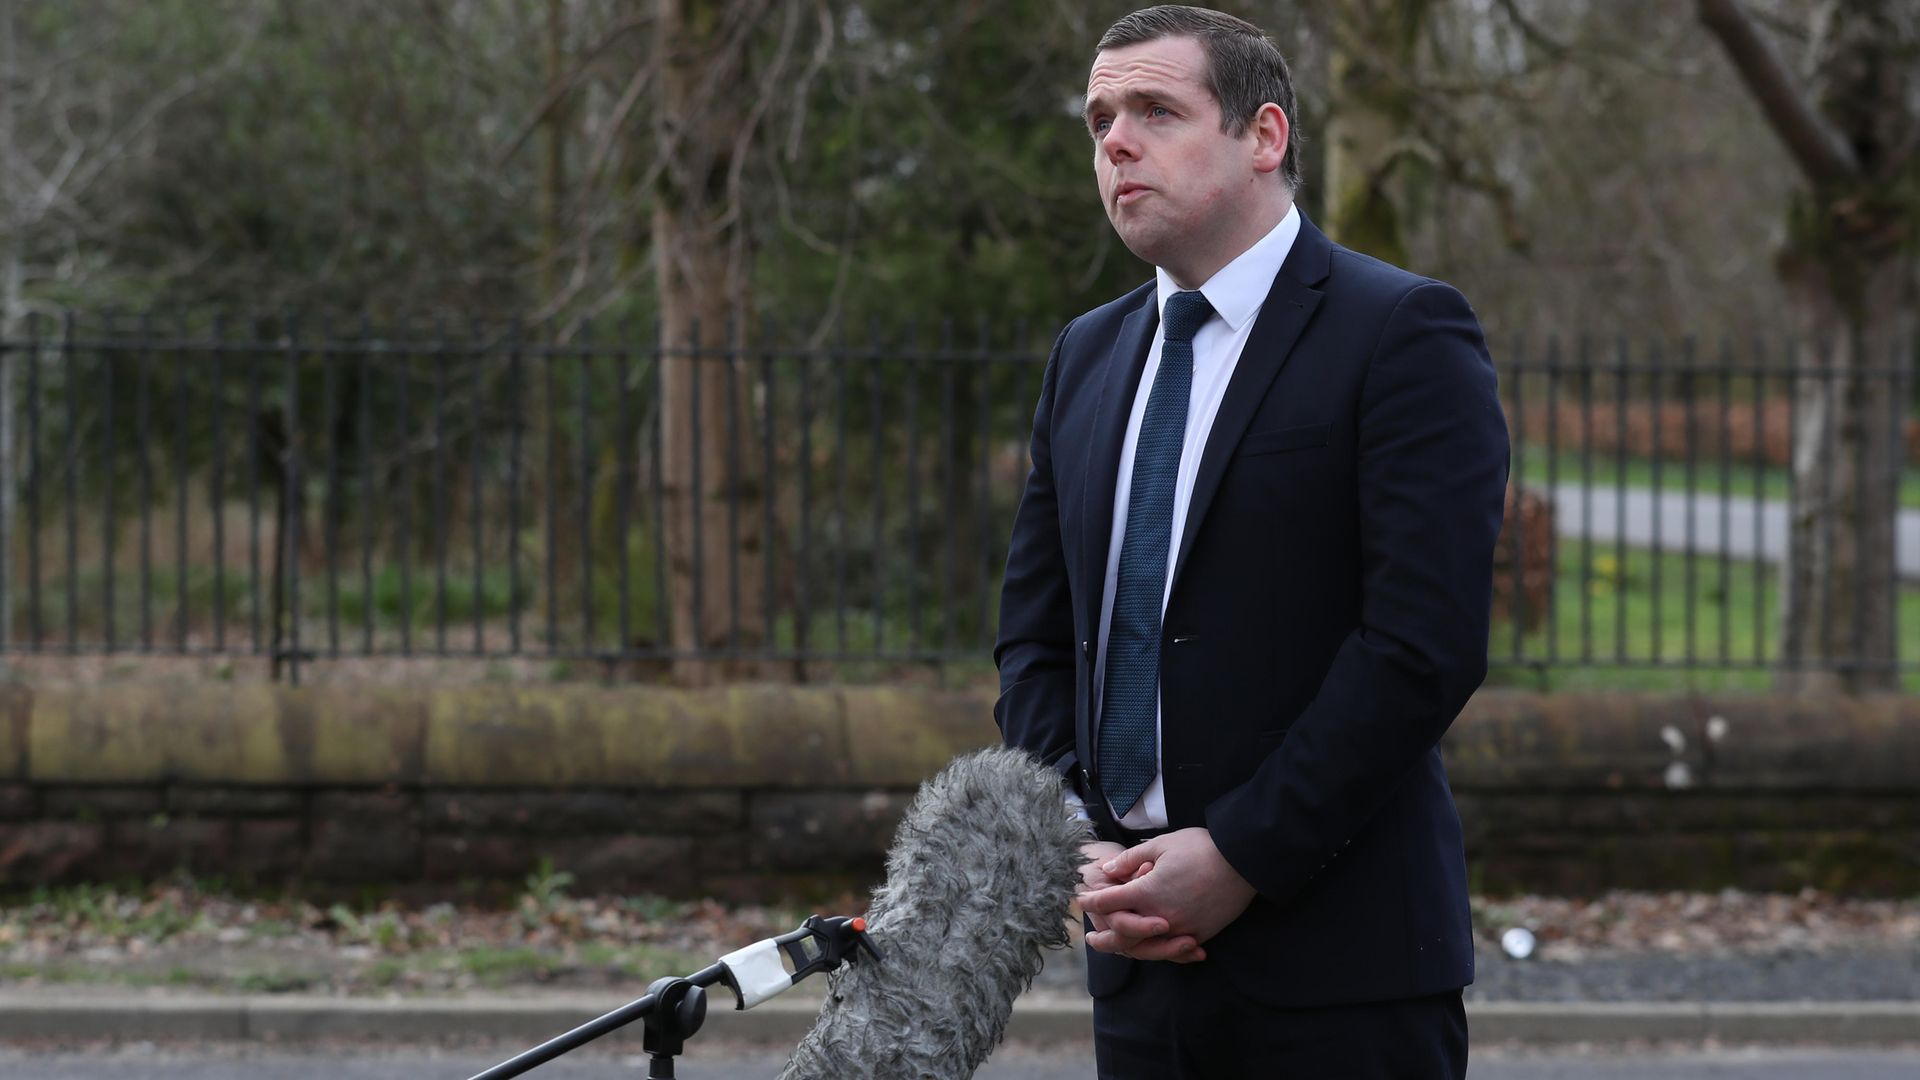 Scottish Conservative Leader Douglas Ross said Boris Johnson's absence from campaigning in Scotland is due to Covid restrictions - Credit: PA